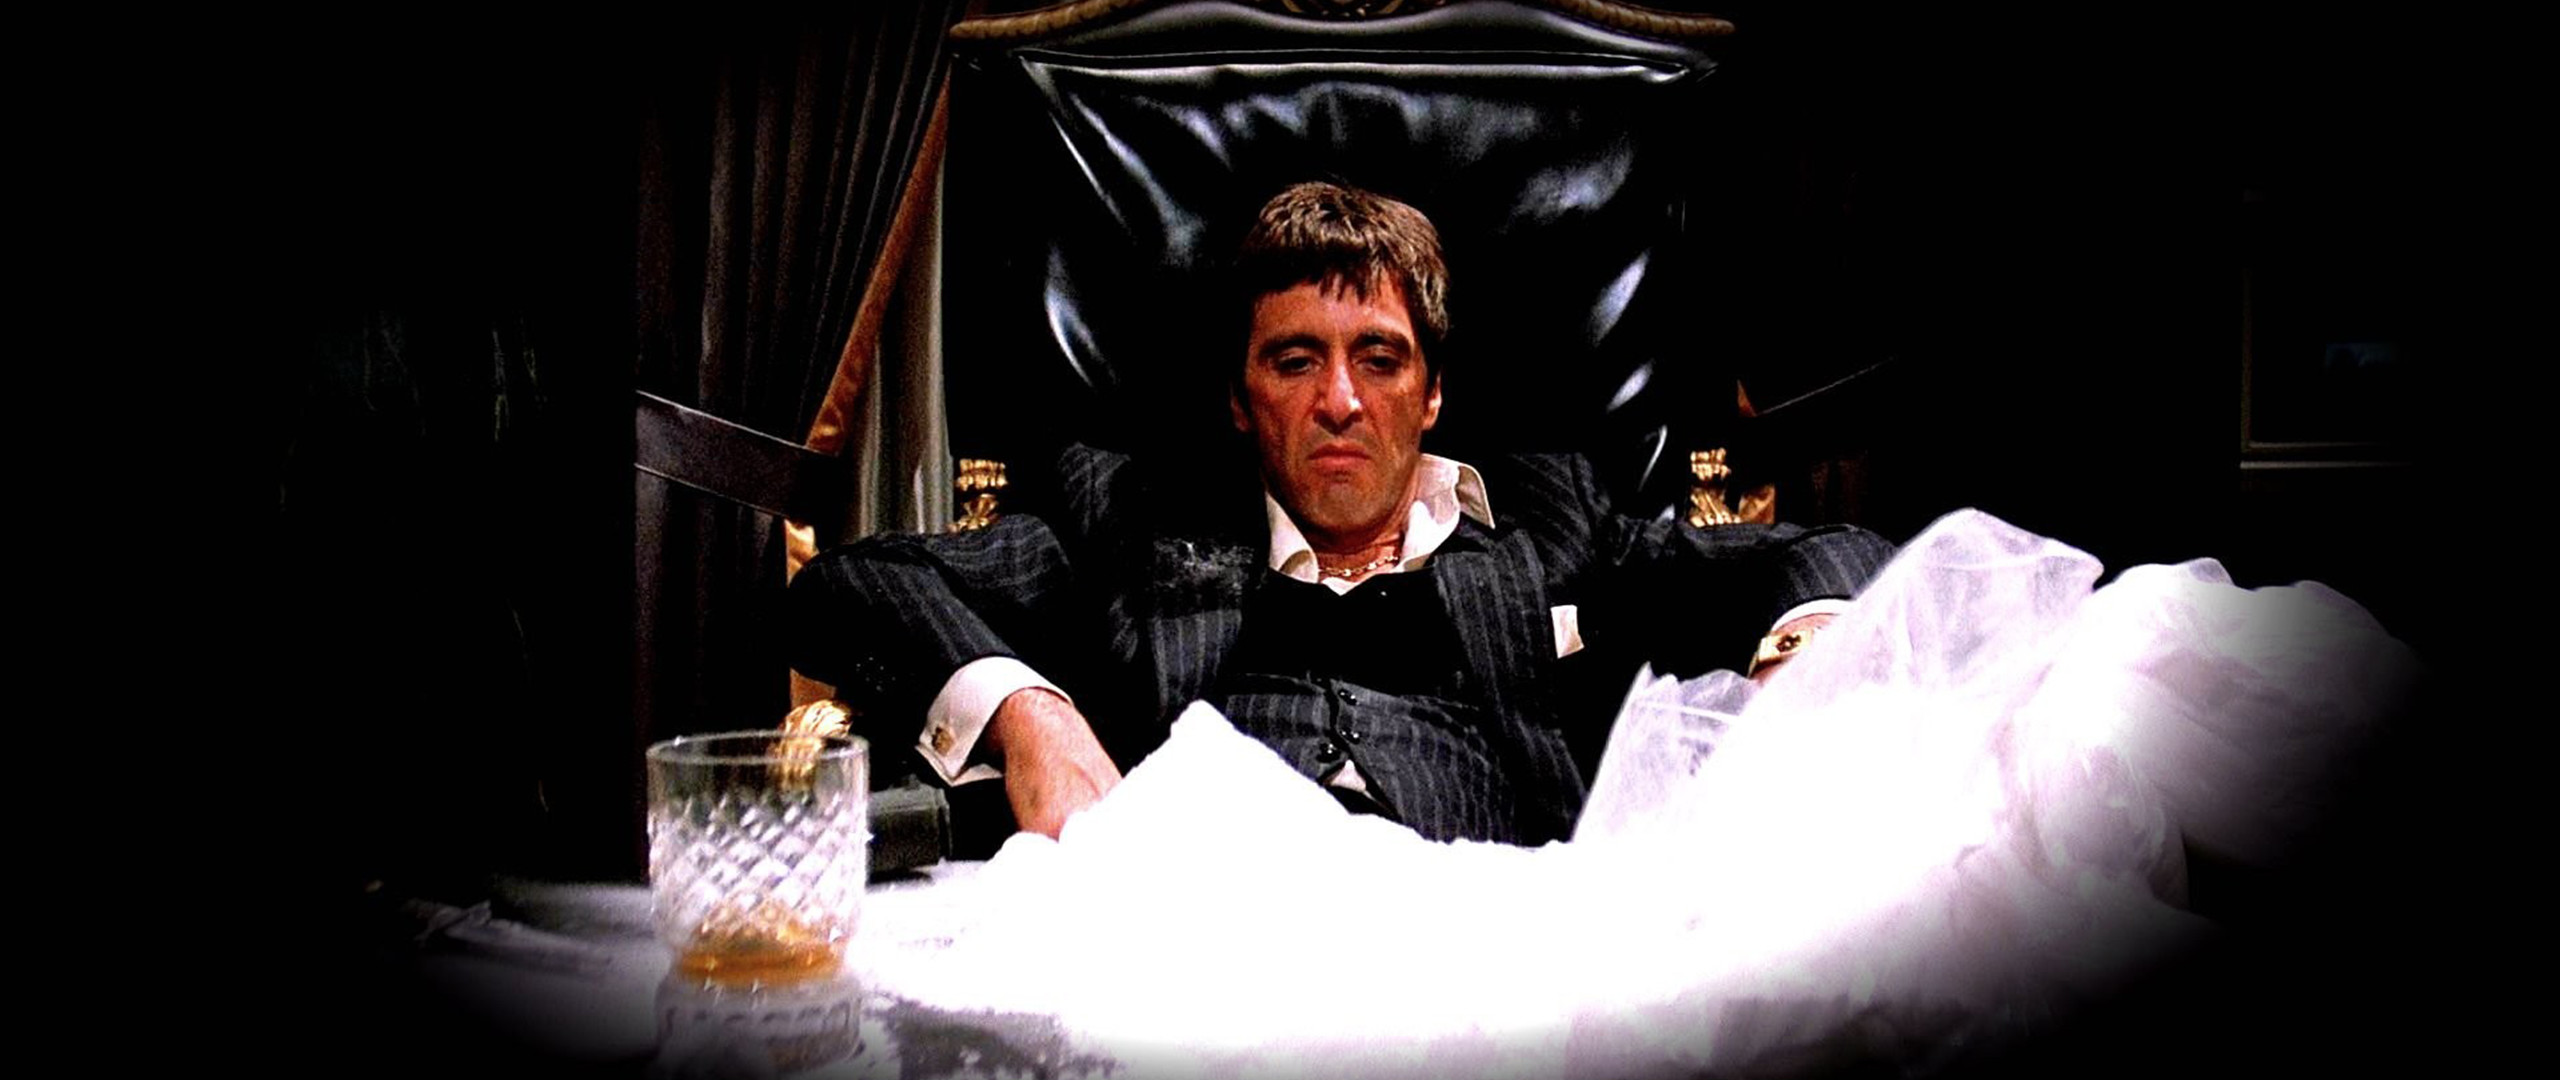 Scarface wallpaper hd 67 pictures - Scarface wallpaper iphone ...